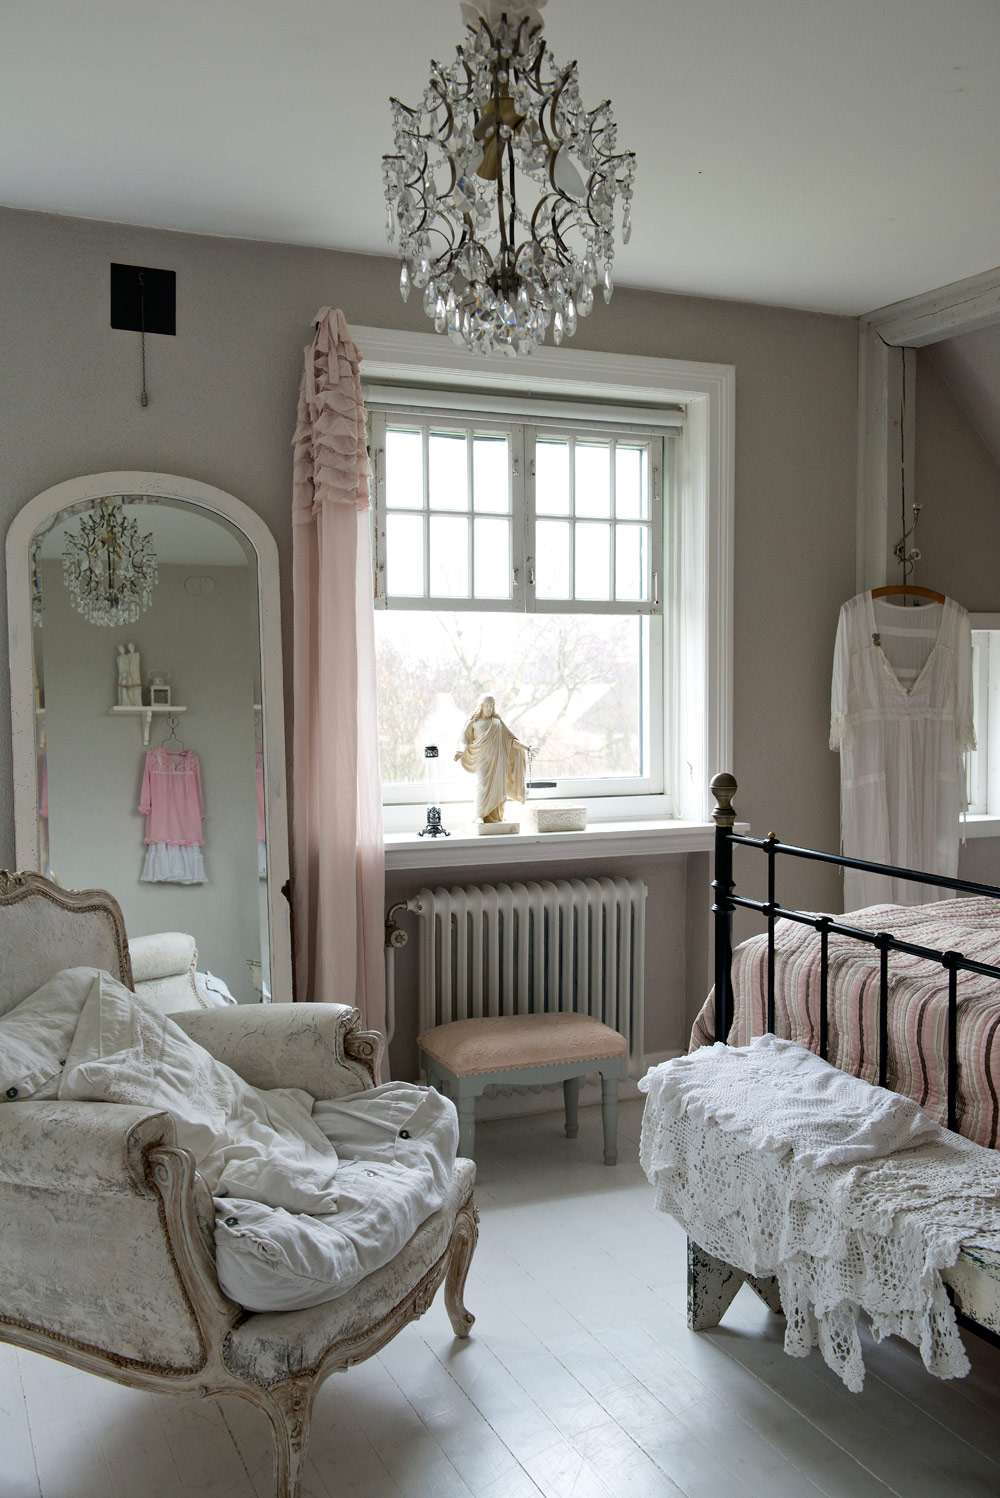 inspiring country chic bedroom decorating ideas | Gin Design Room: Shabby Chic Inspiration